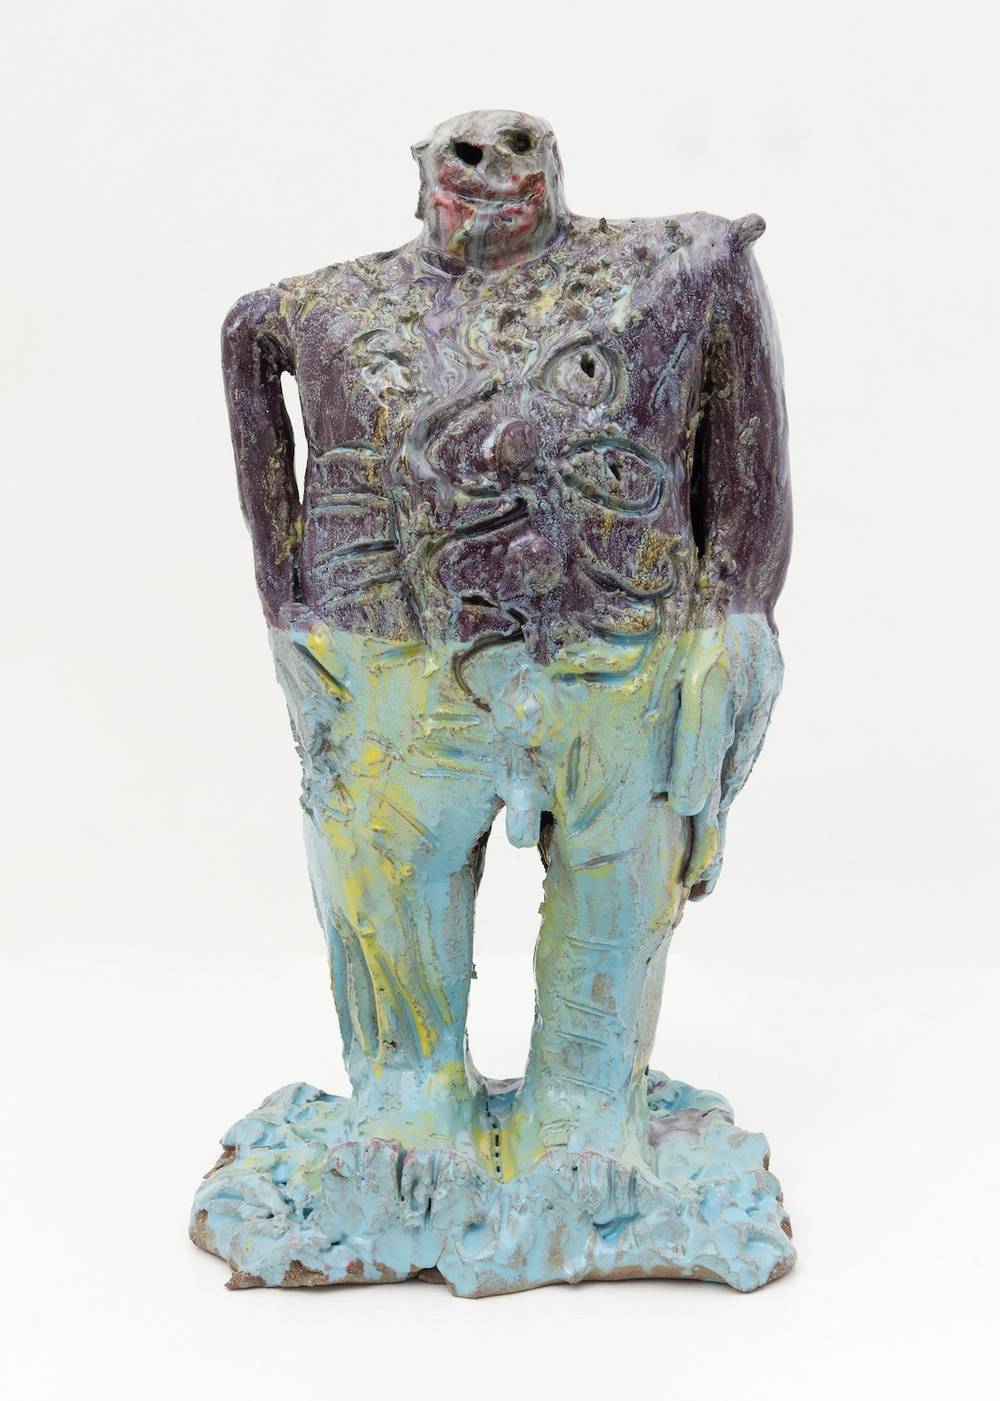 "William J. O'Brien Untitled 2015 Glazed ceramic 20 ¾"" x 10"" x 10 ½"" WOB997"